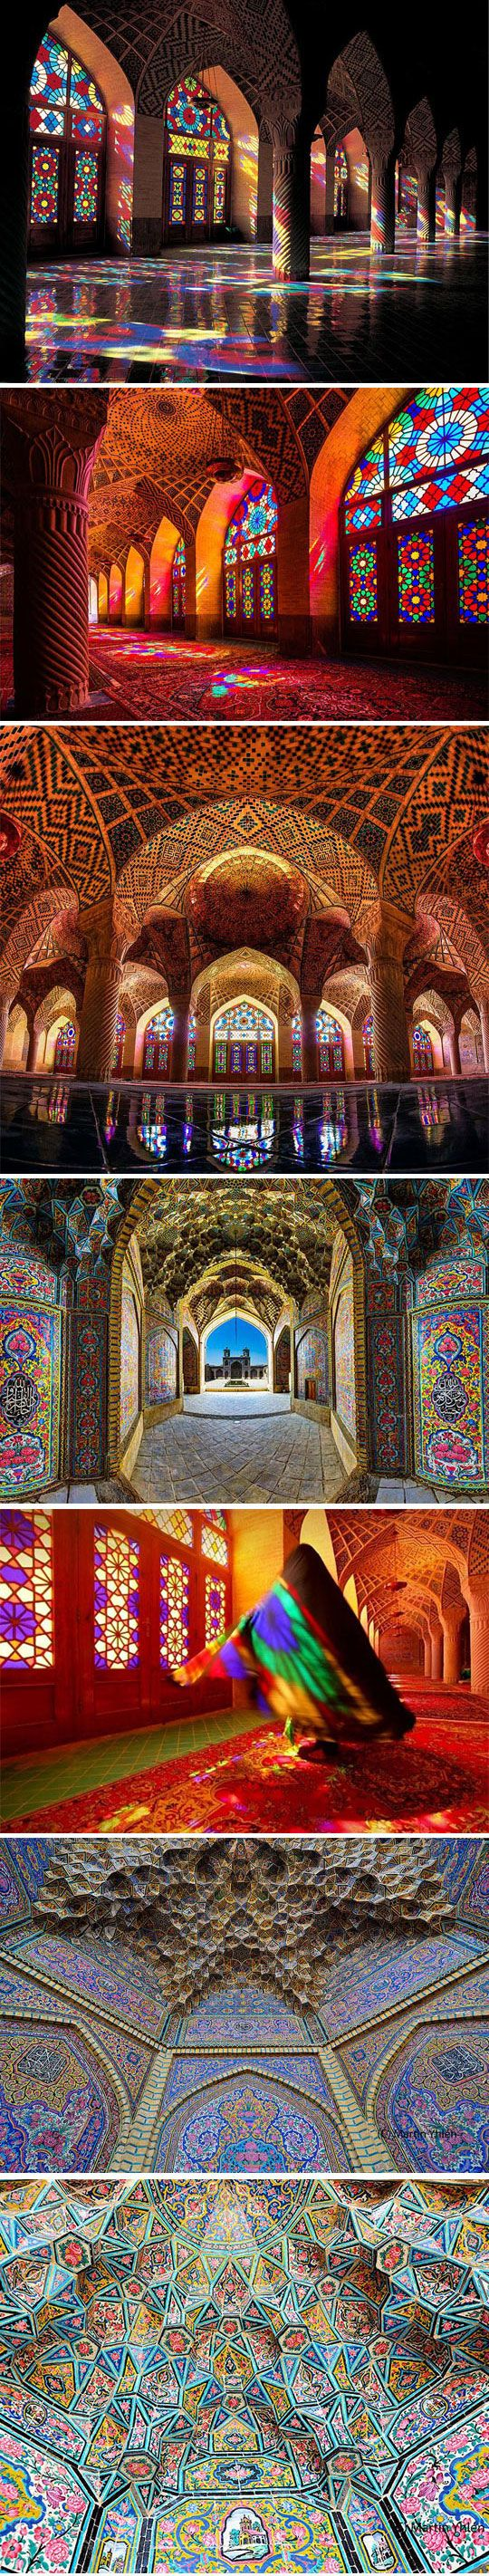 Nasir al-Mulk  Mosque  a.k.a. Pink Mosque (Construction Begun In 1876 and Finished in 1888)  -  Shiraz, Iran